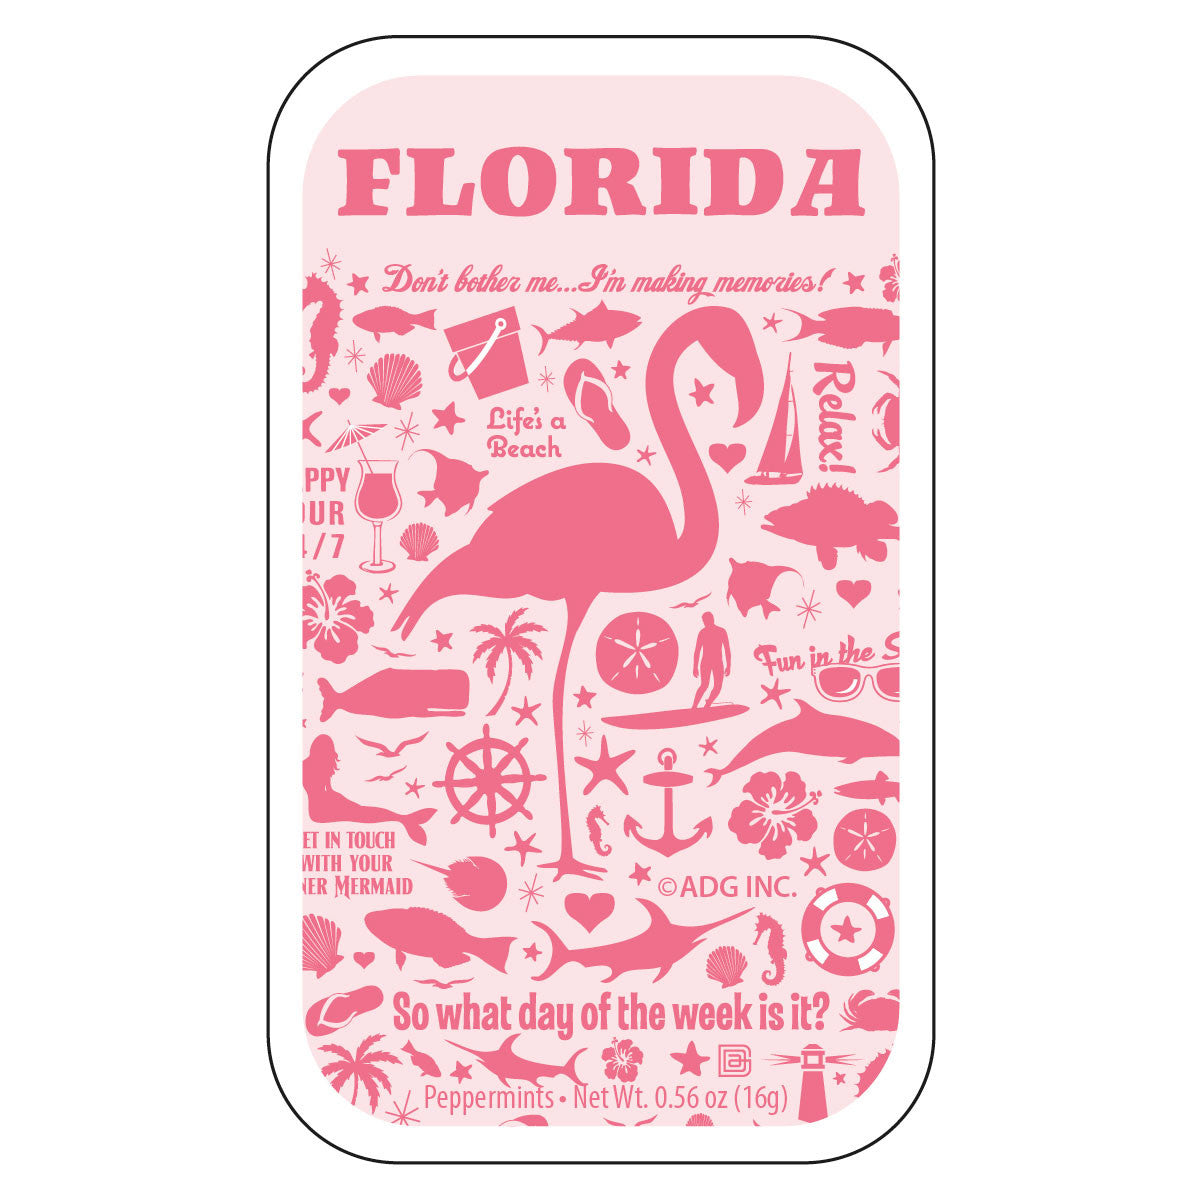 Flamingo Pattern Florida - 0206A